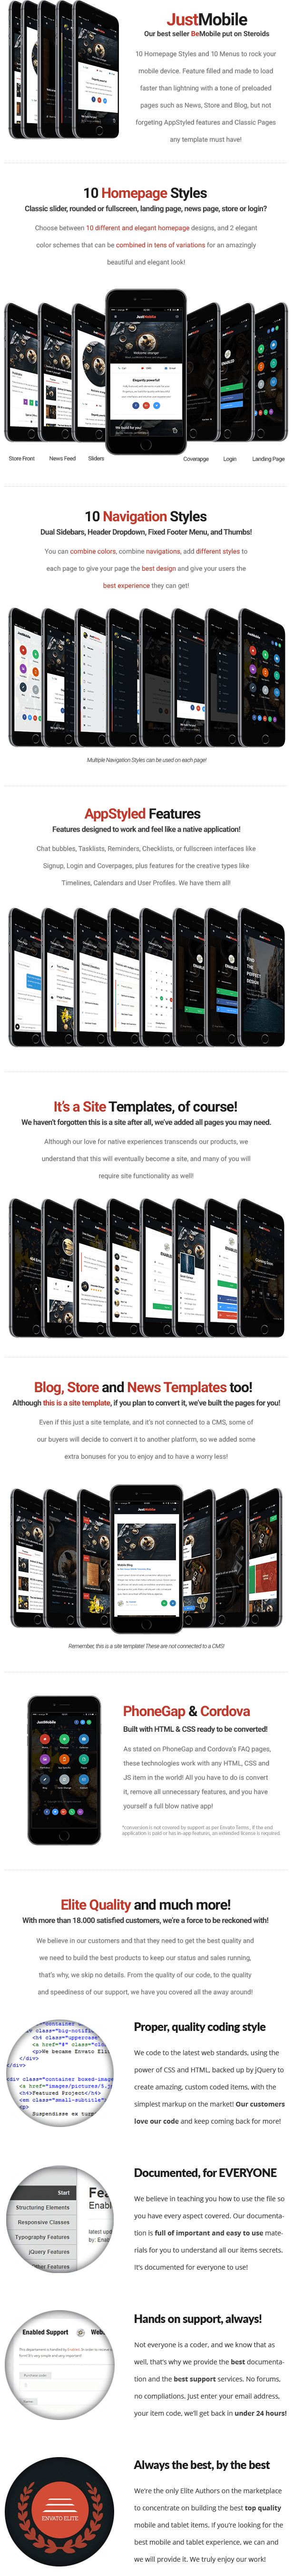 Just Mobile | Mobile Template - 8